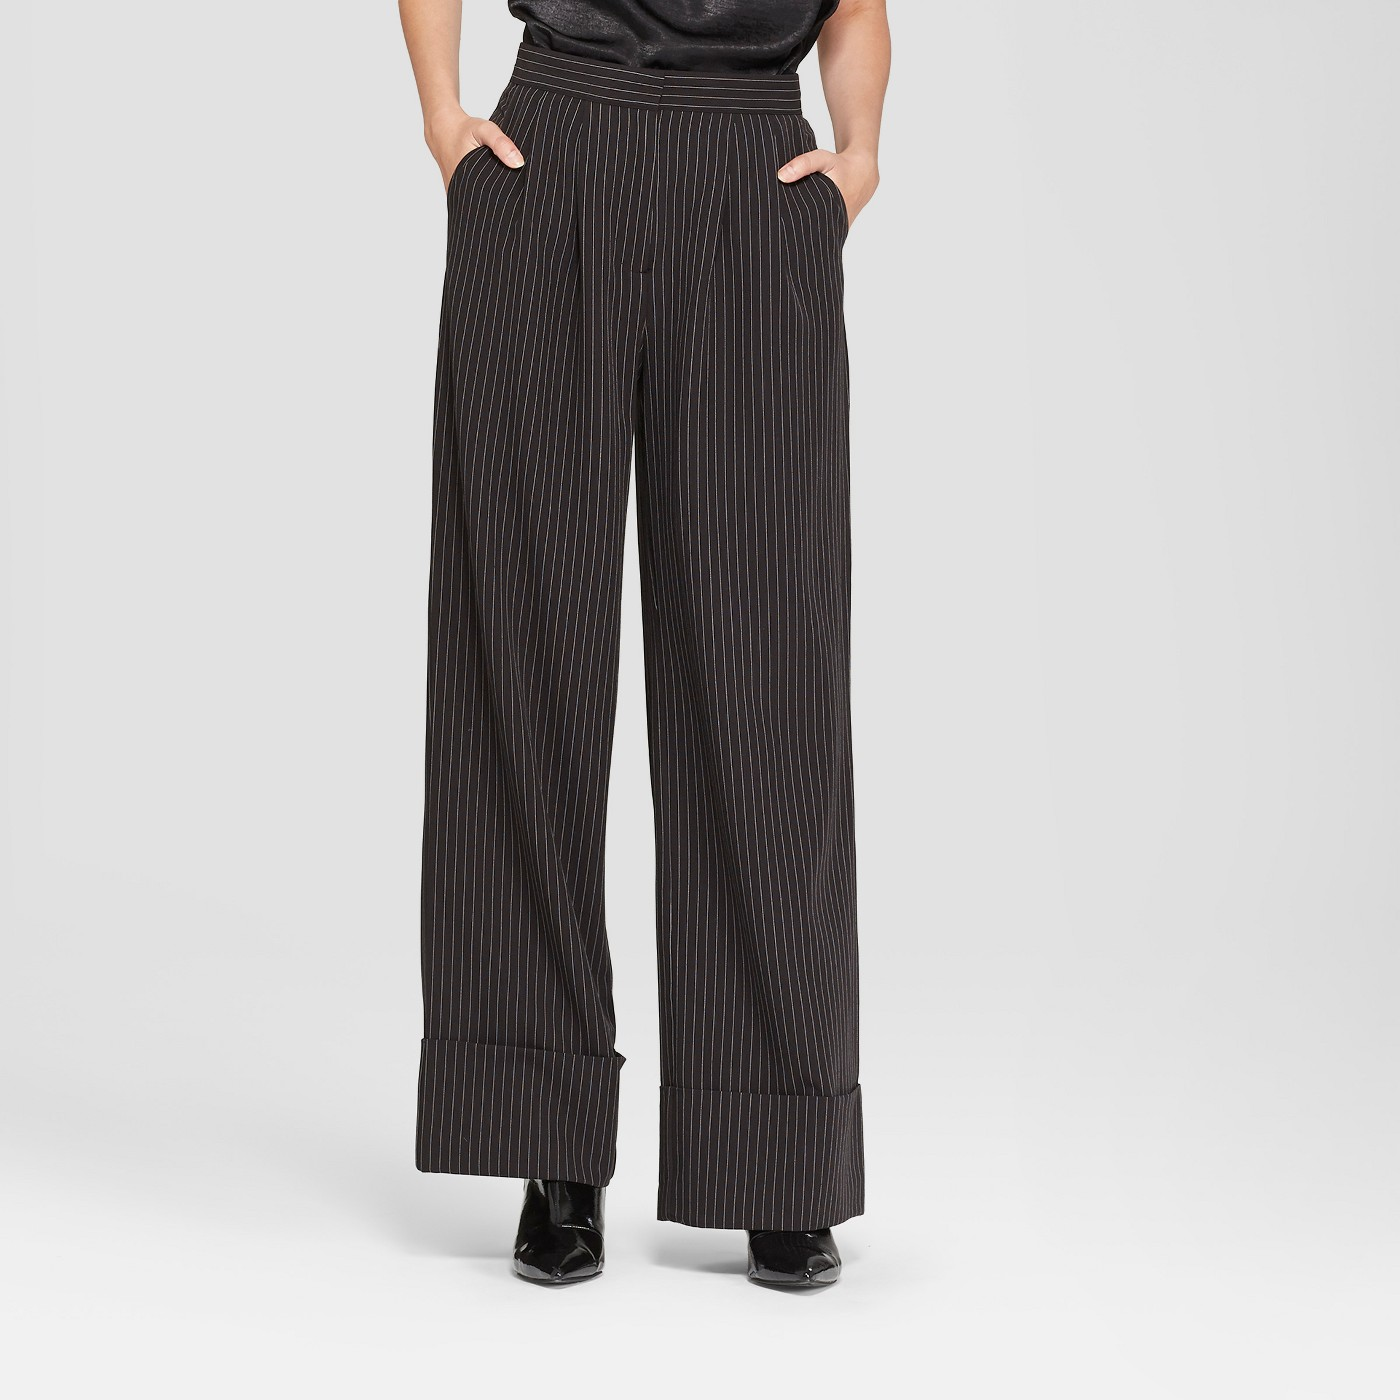 trousers from the Target Prologue line - JK Style